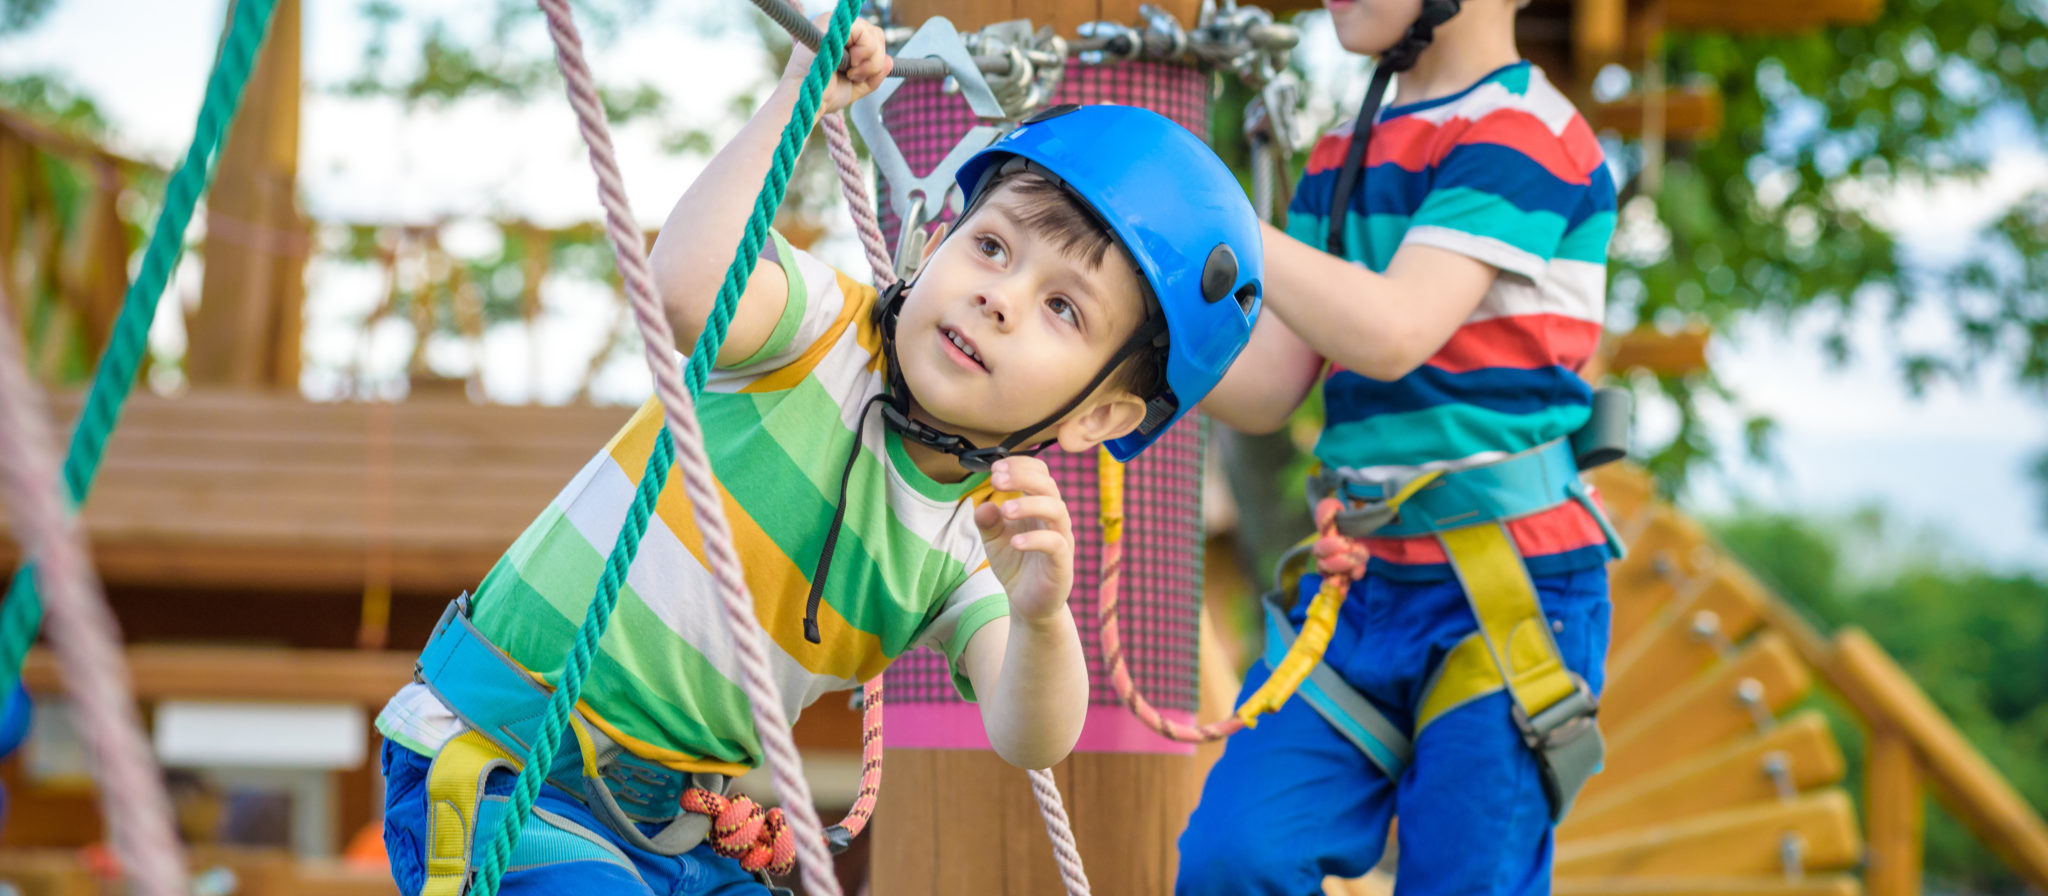 In need of ideas for recreation on your next family trip? Check and see if there are any rope courses or maybe even zip lines near your campsite.